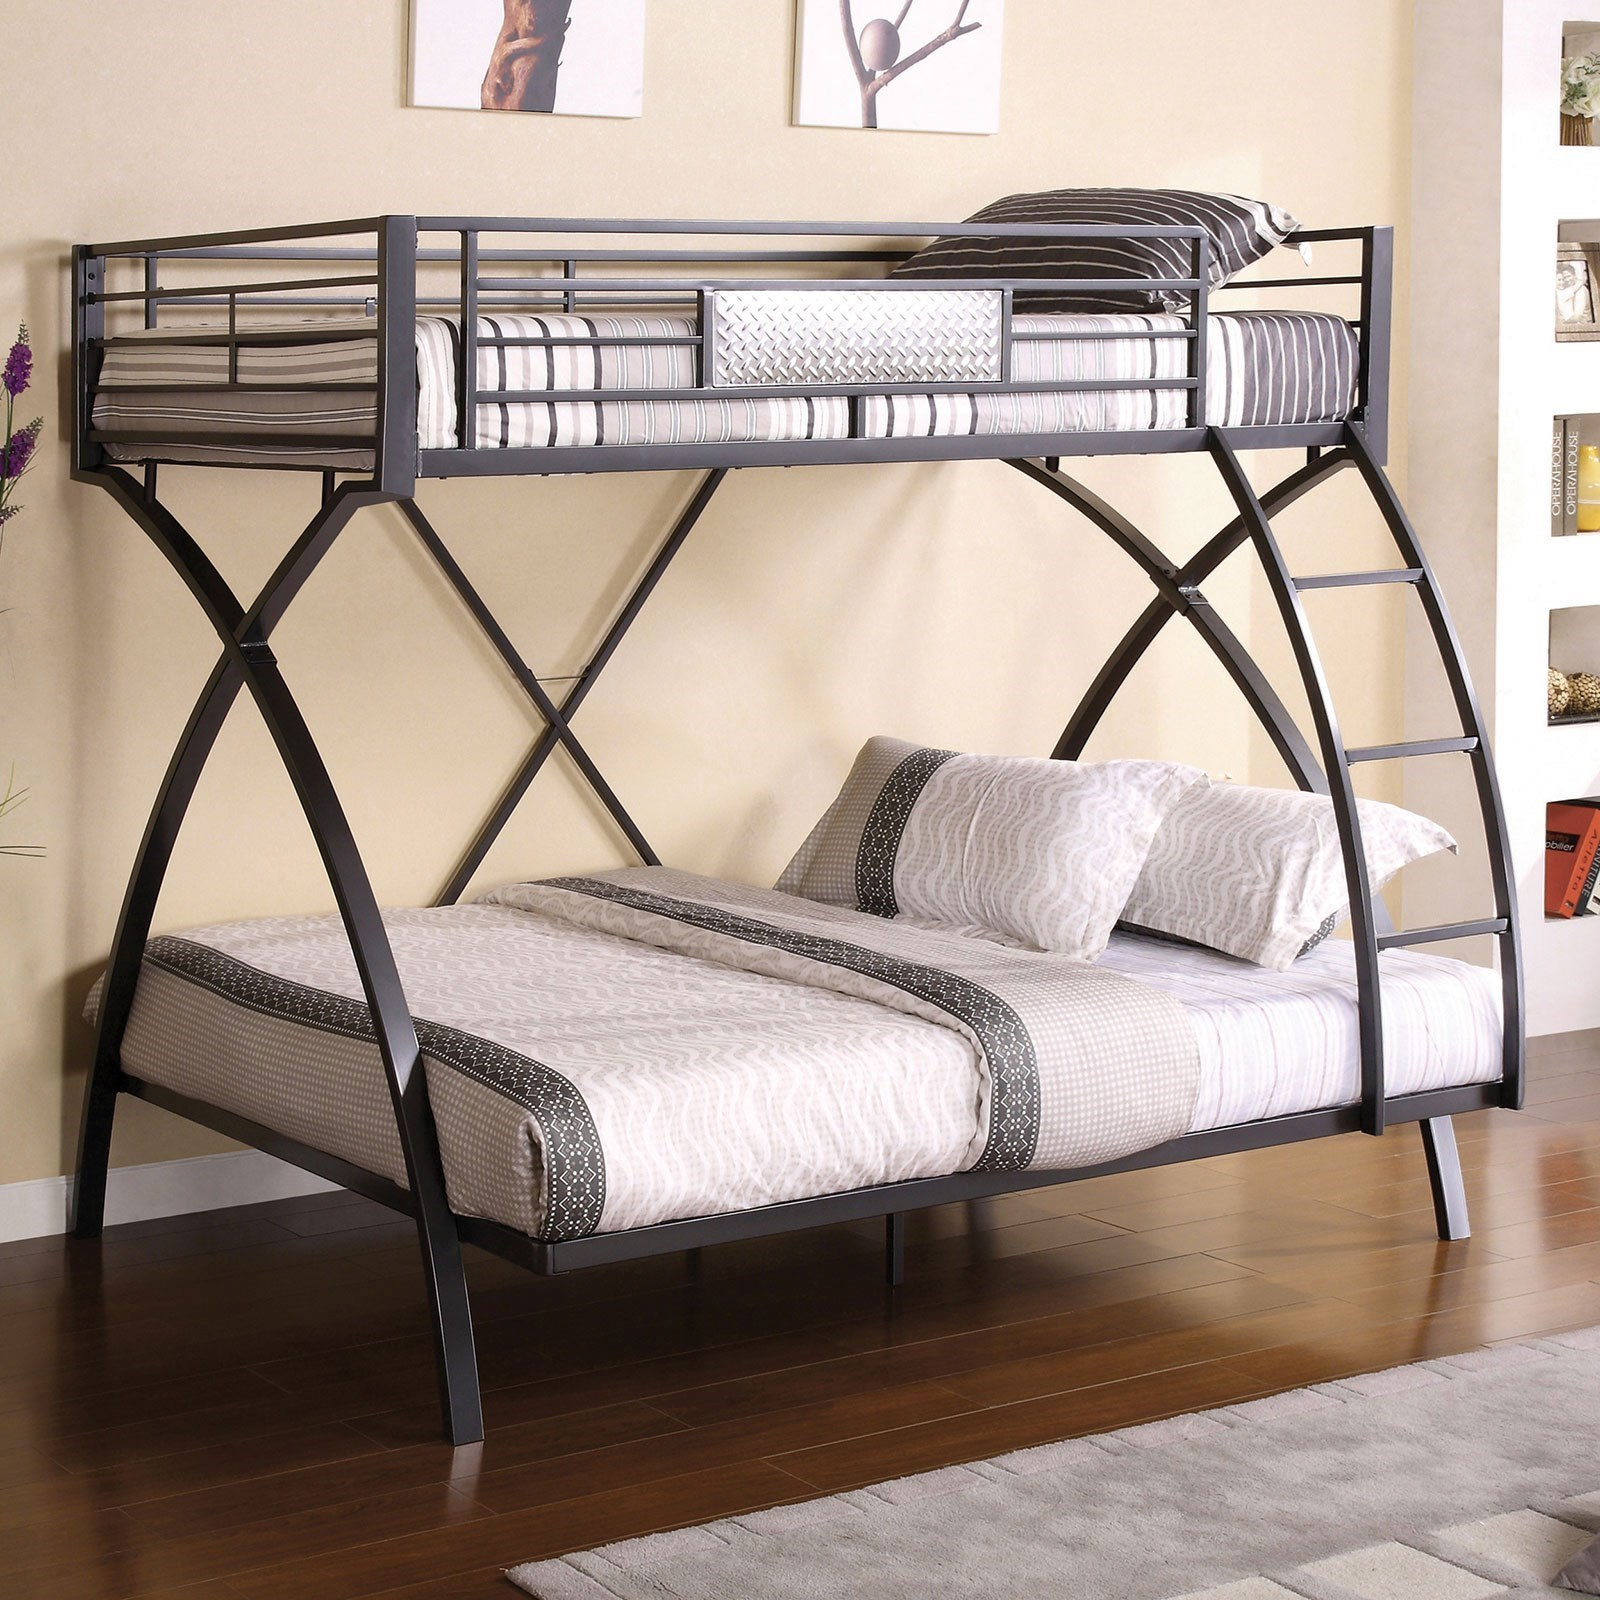 Apollo Twin/Full Bunk Bed at Household Furniture